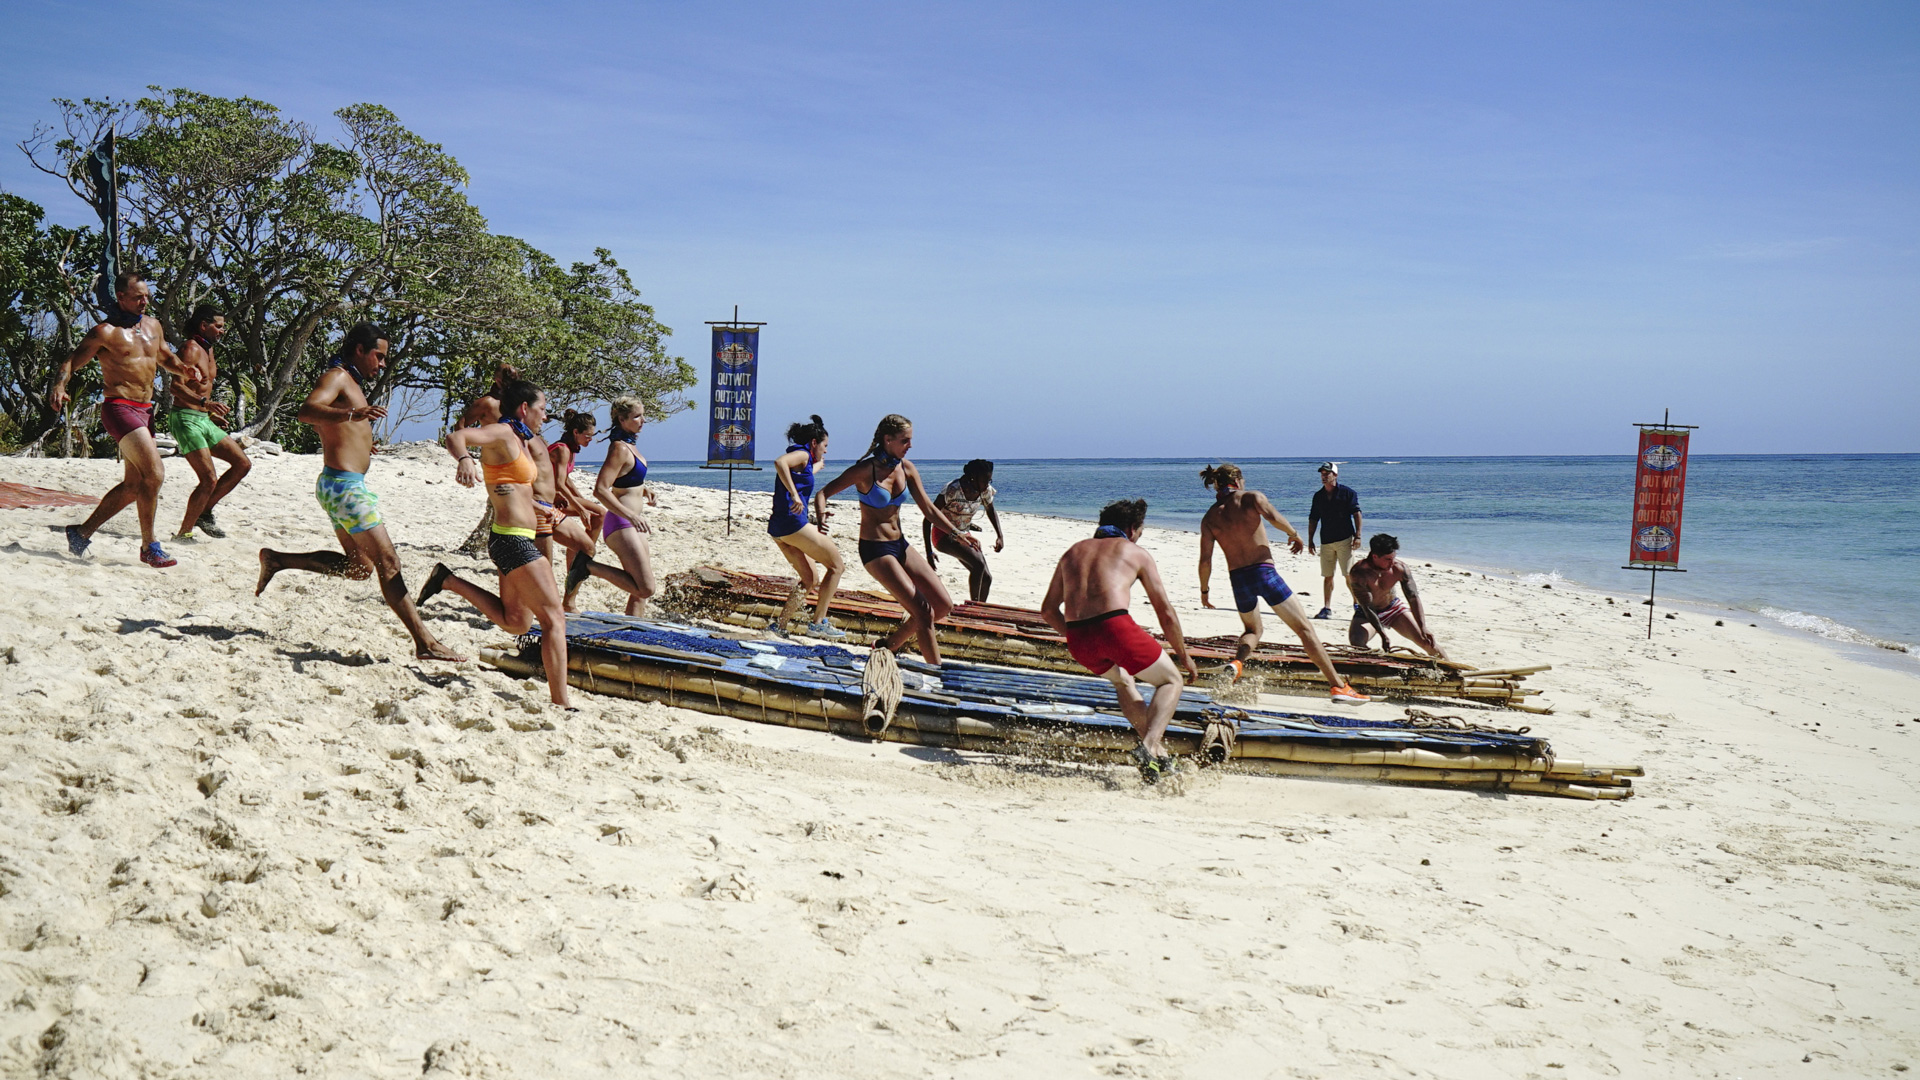 Each group races to their rafts and gets ready to paddle out.